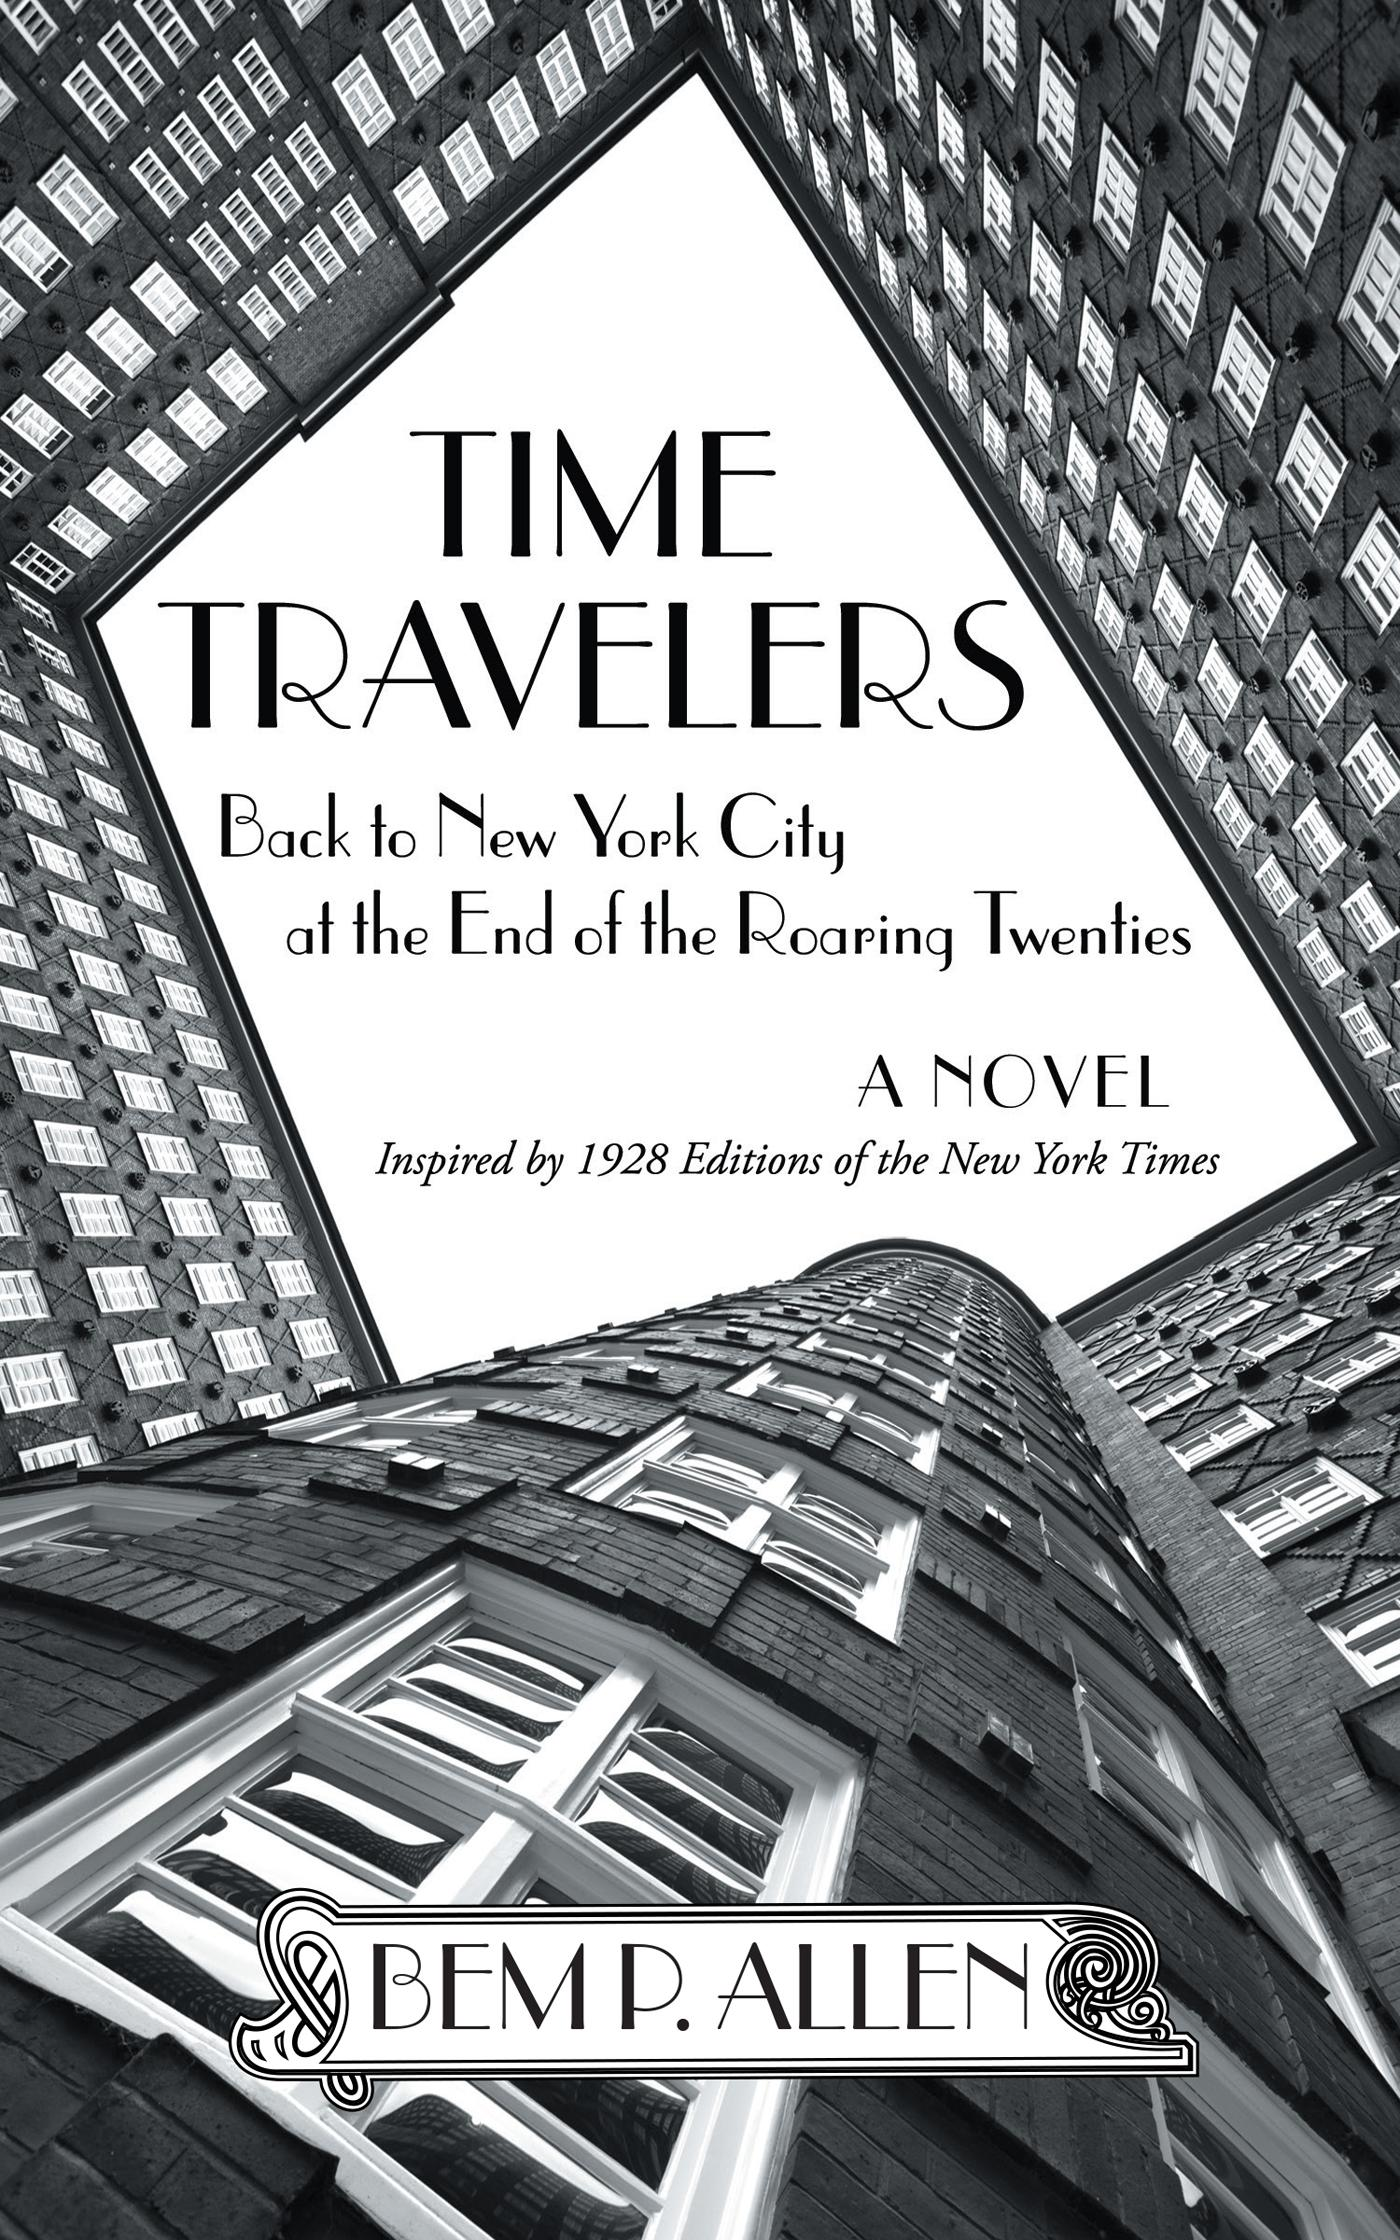 Time travelers see ebooks by bem p allen fandeluxe Image collections